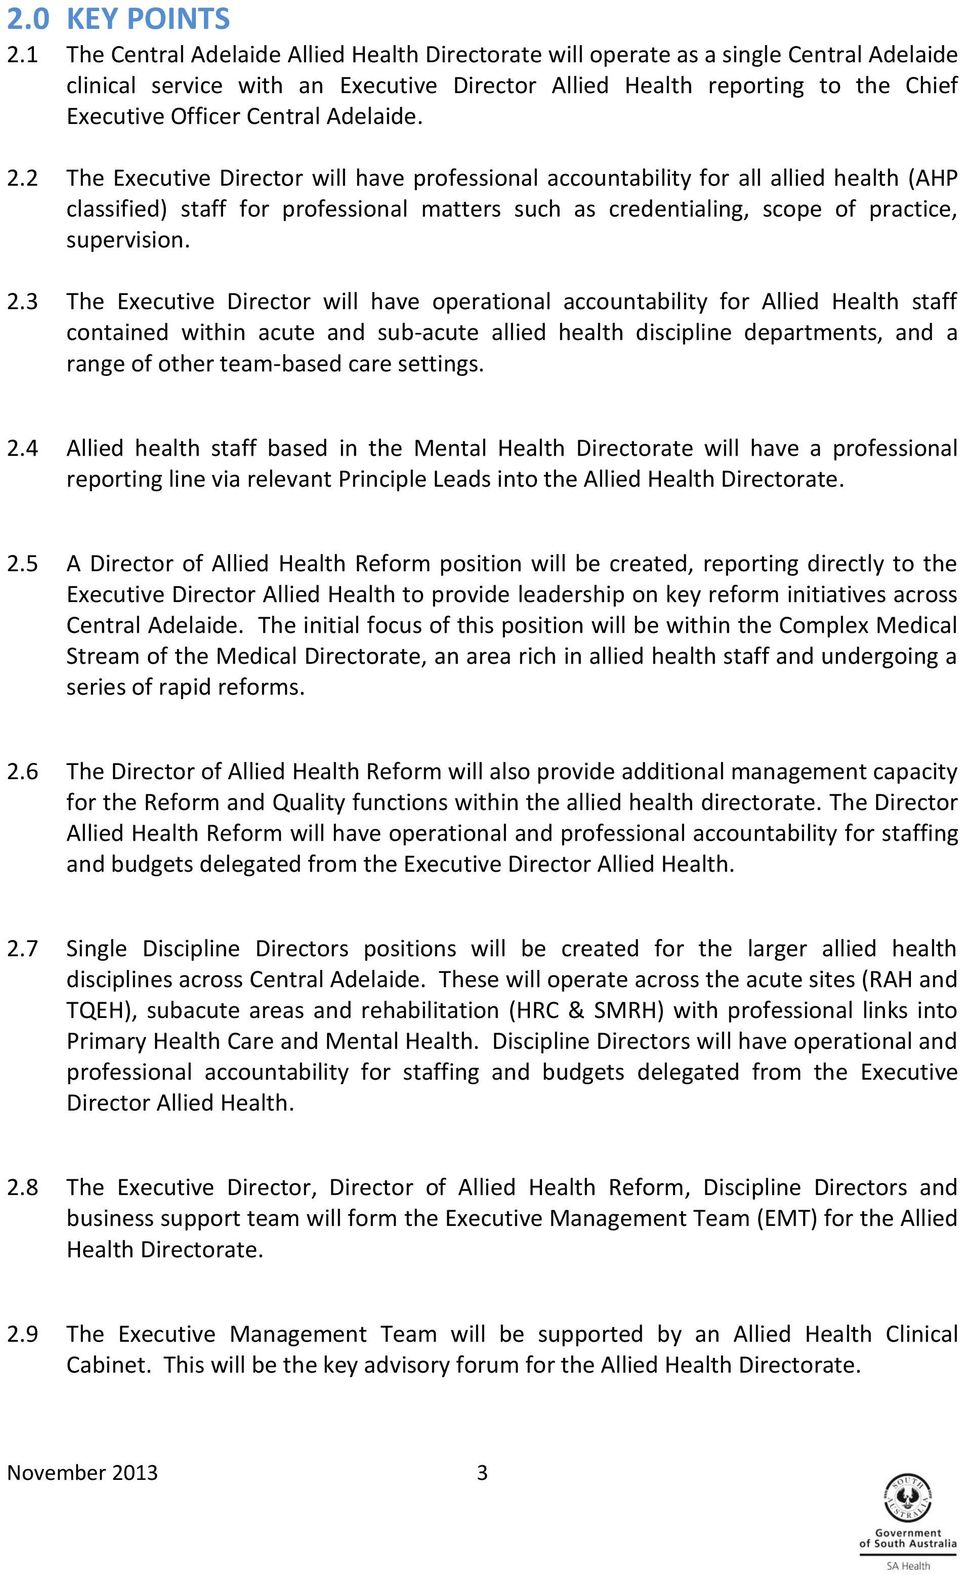 Adelaide. 2.2 The Executive Director will have professional accountability for all allied health (AHP classified) staff for professional matters such as credentialing, scope of practice, supervision.